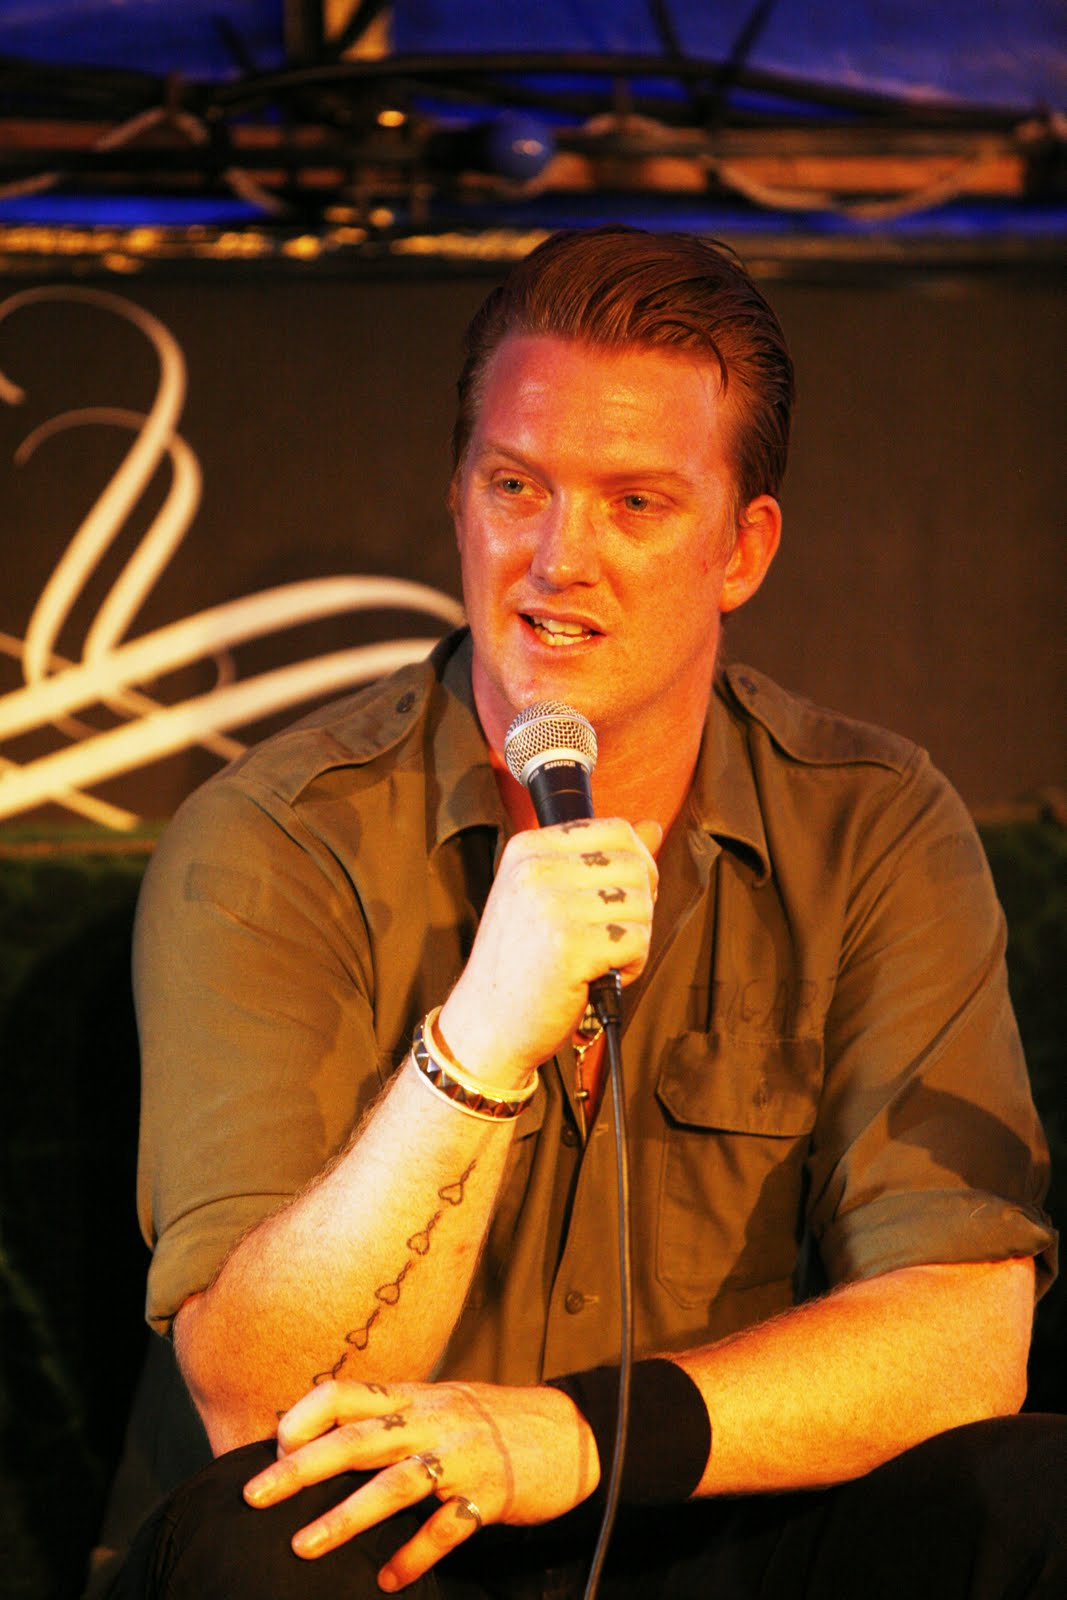 Tattoos designs pictures josh homme tattoos for Josh homme tattoos